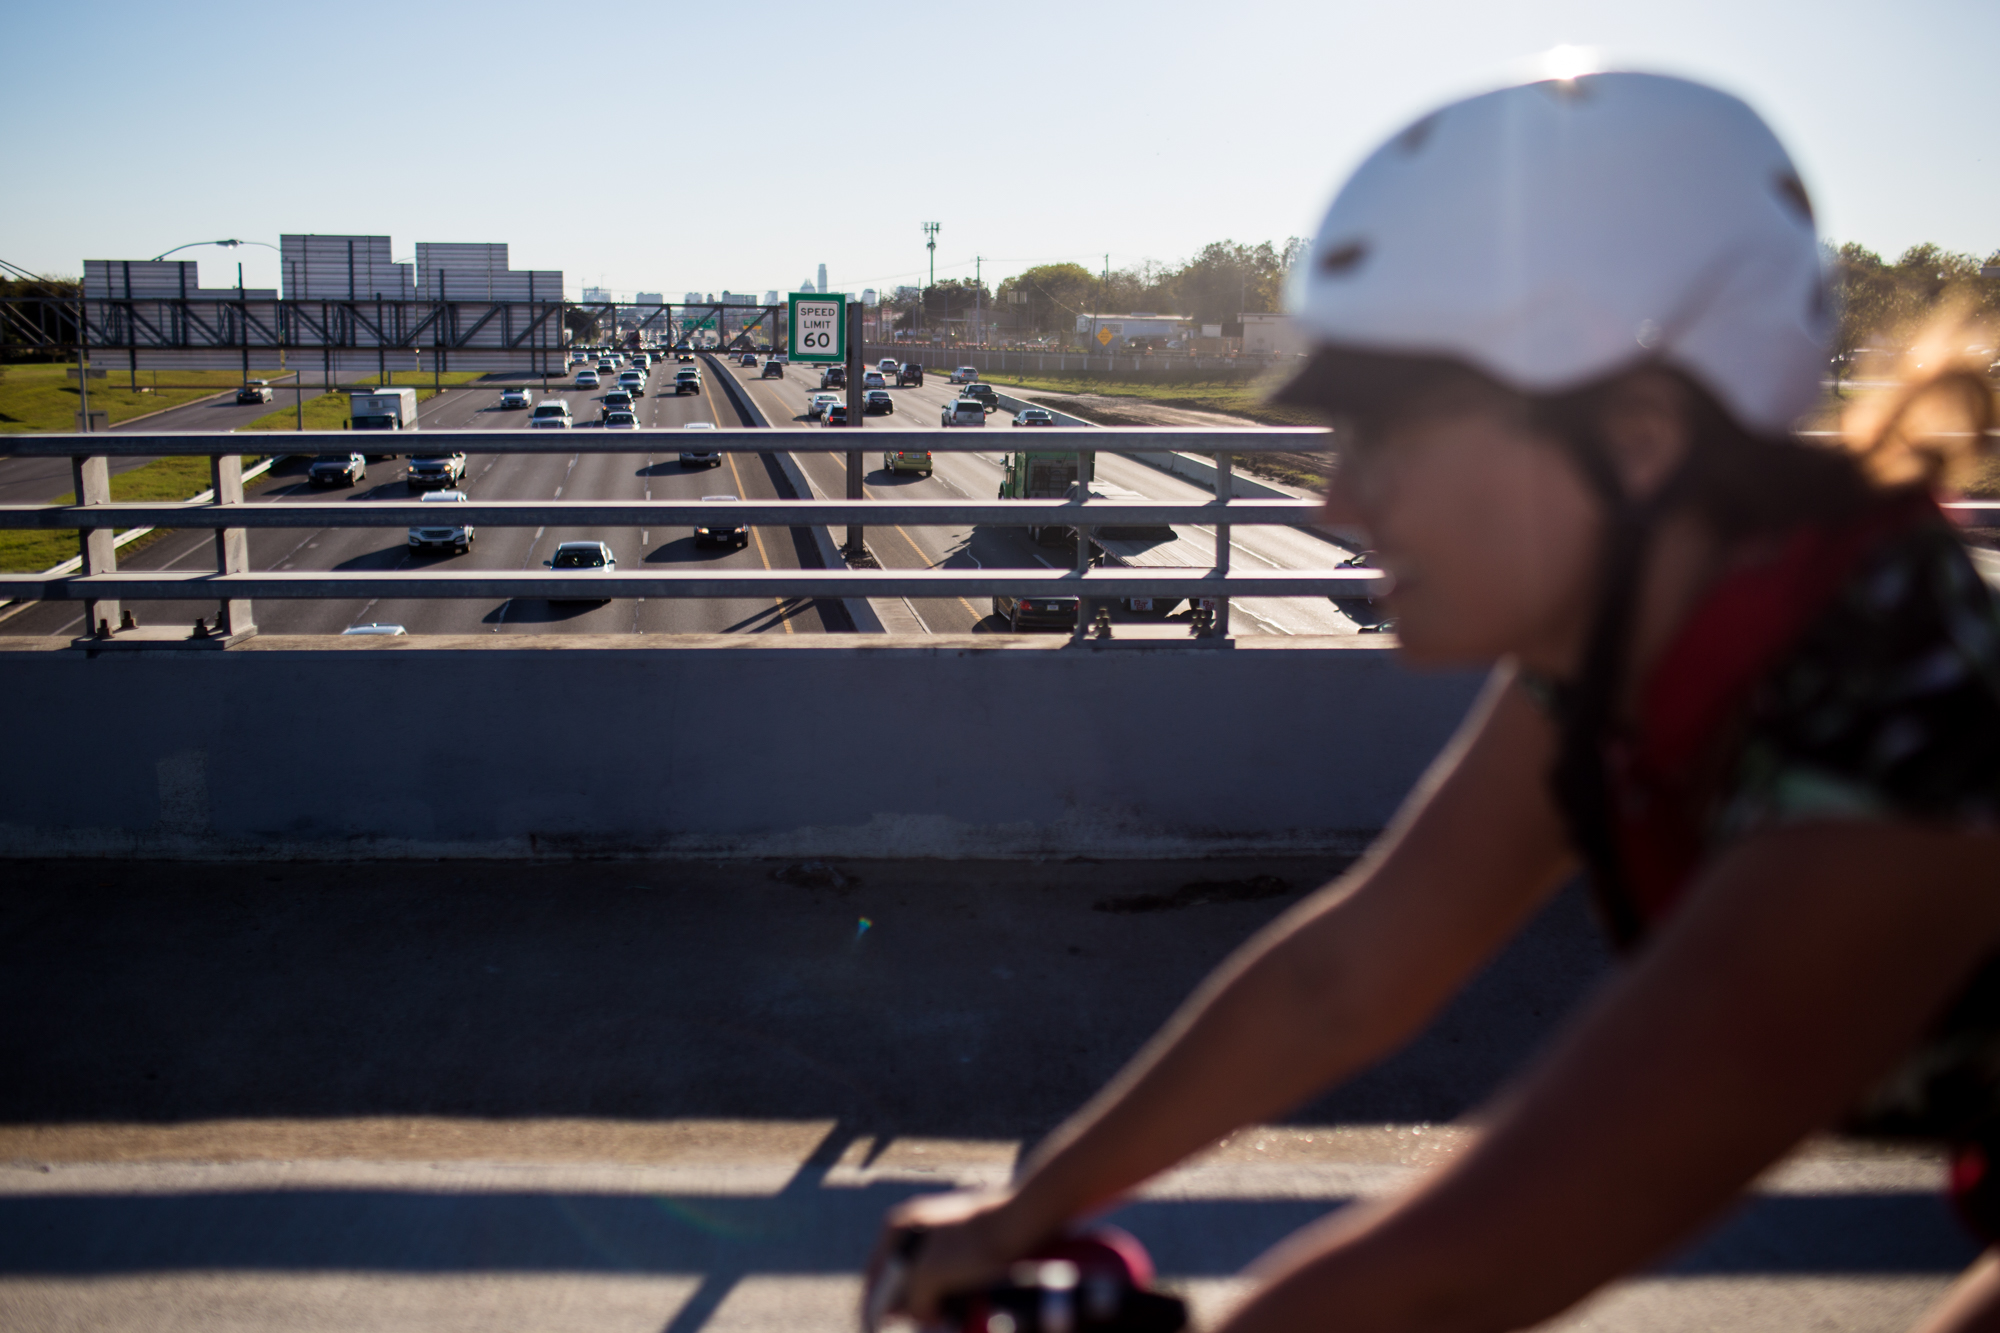 Amanda said parts of her commute can get rather scary, and that drivers who don't give her enough space and debris on the road have put her in some dangerous situations crossing the bridge over I-35. North Austin, November 16, 2016.